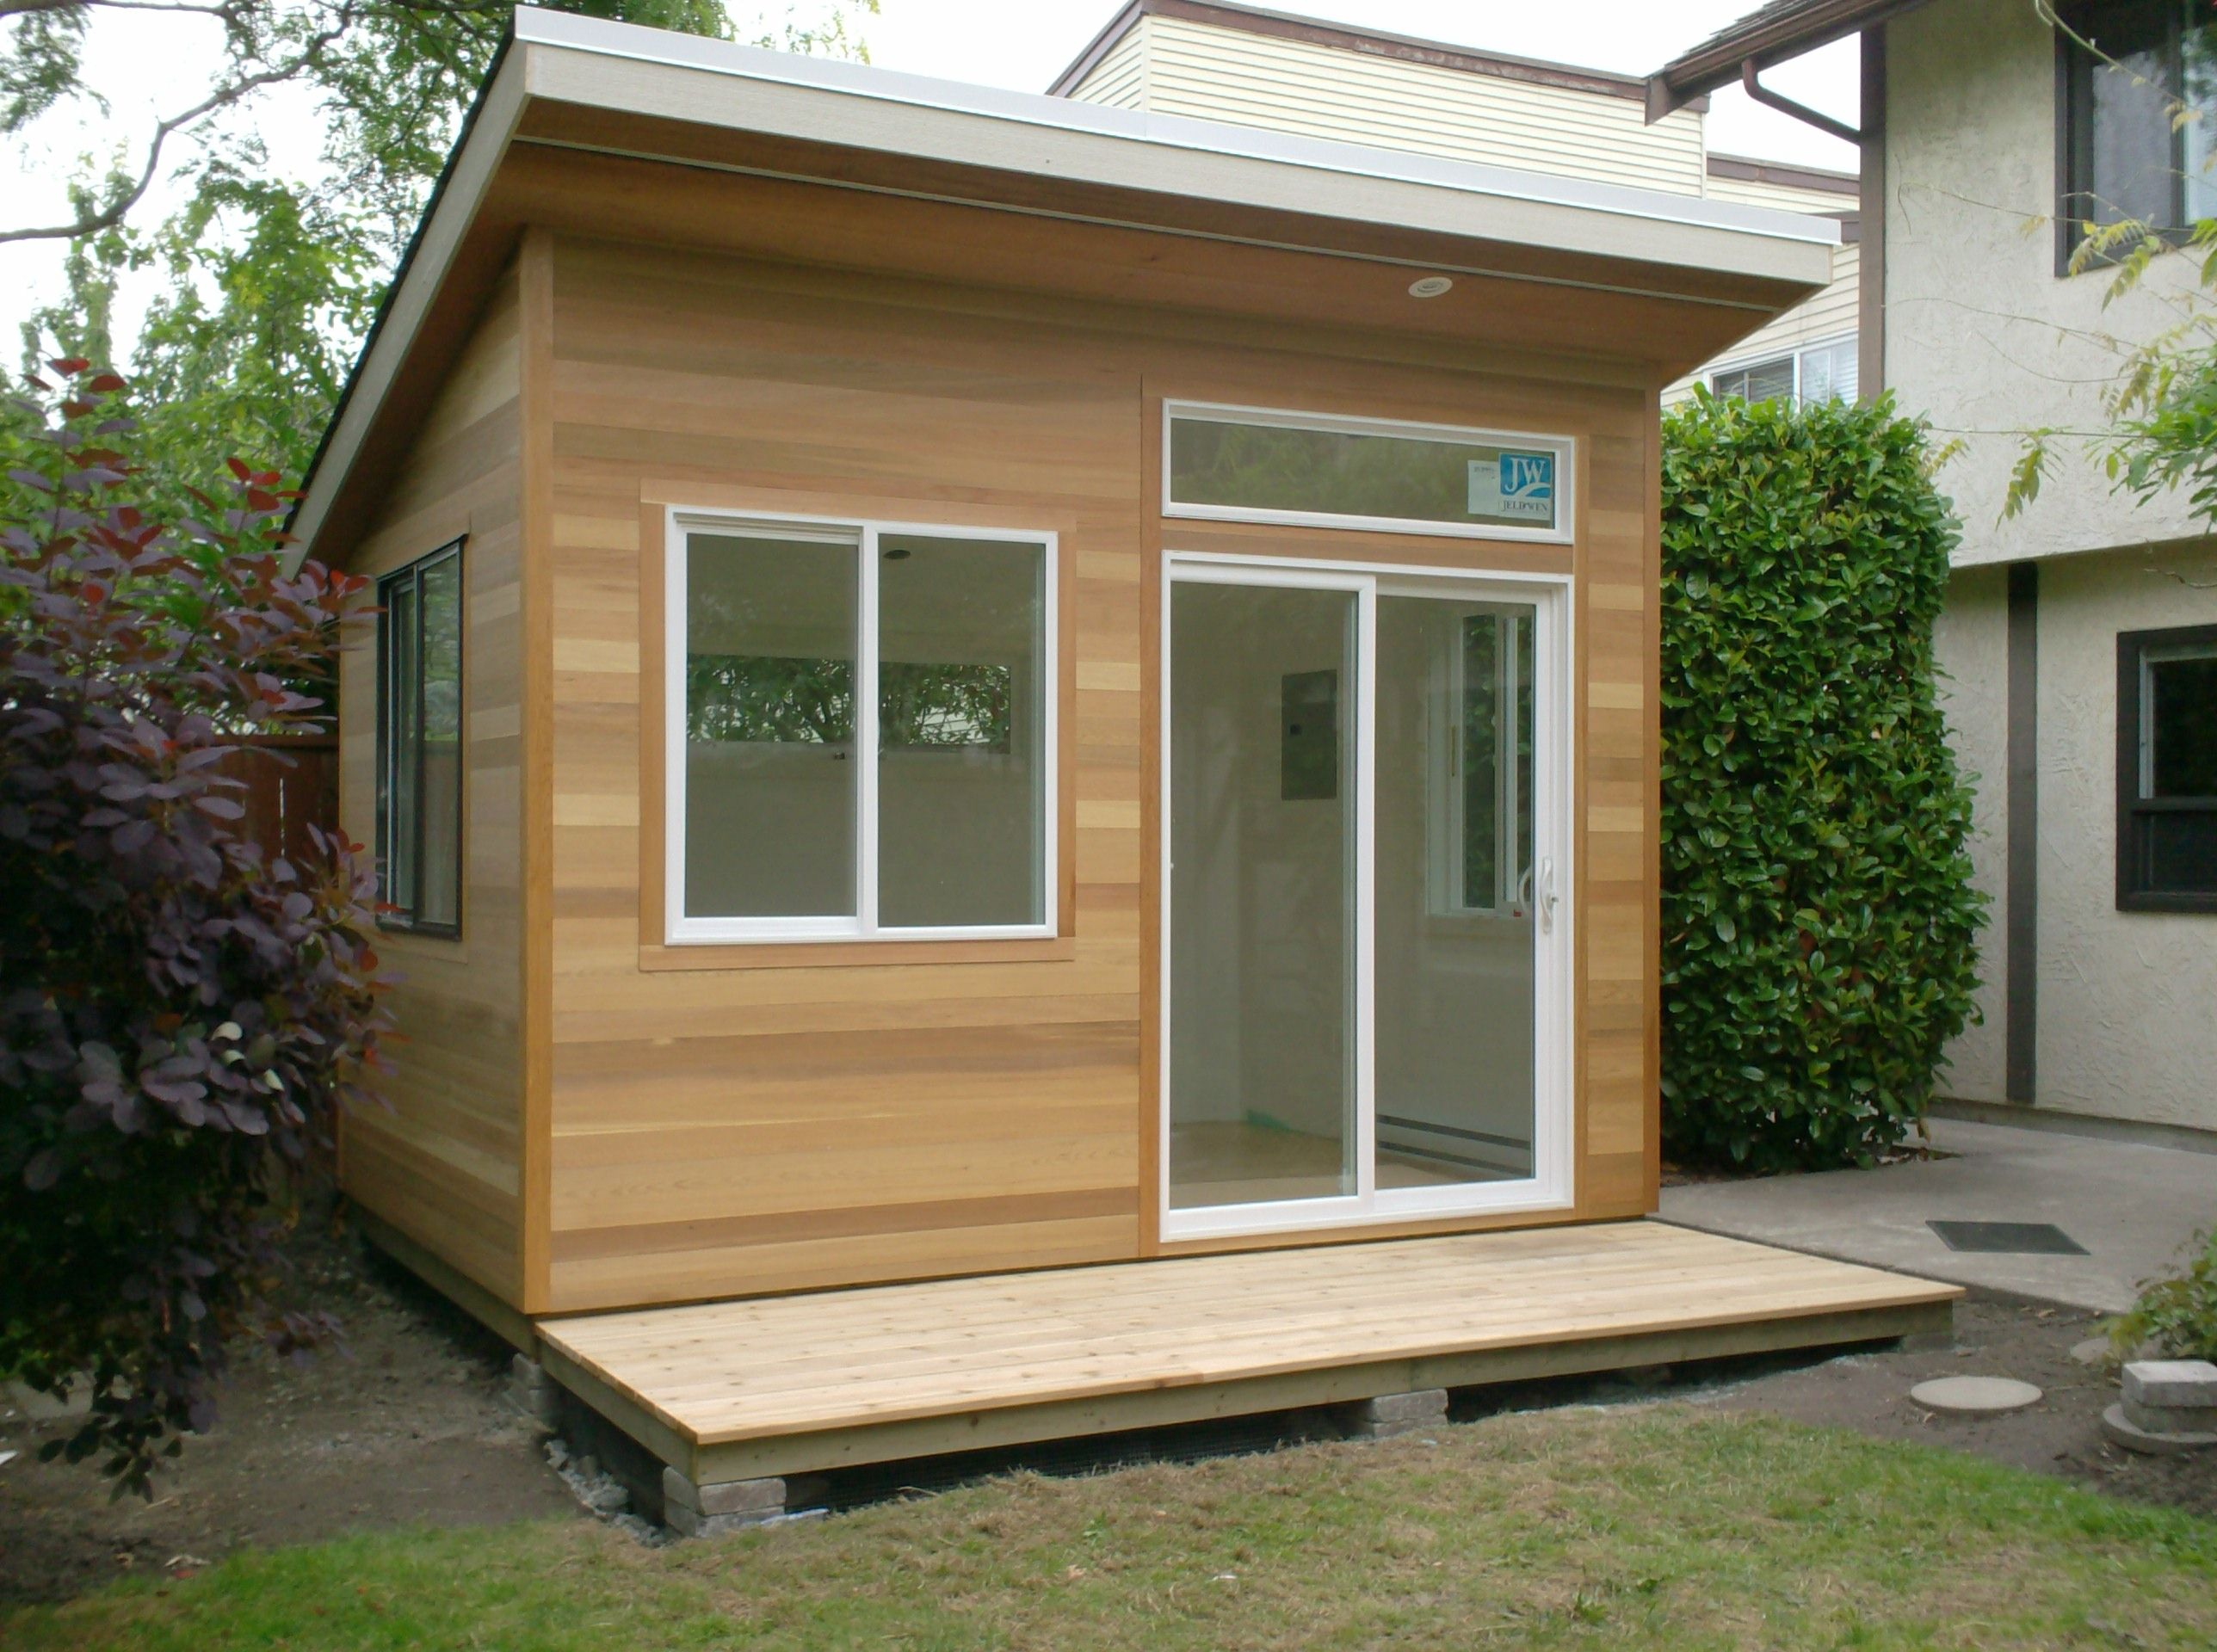 Deluxe with dormer transom windows and cupola - This 8x12 Studio Has A 9 Front Wall In Order To Accommodate The Transom Window